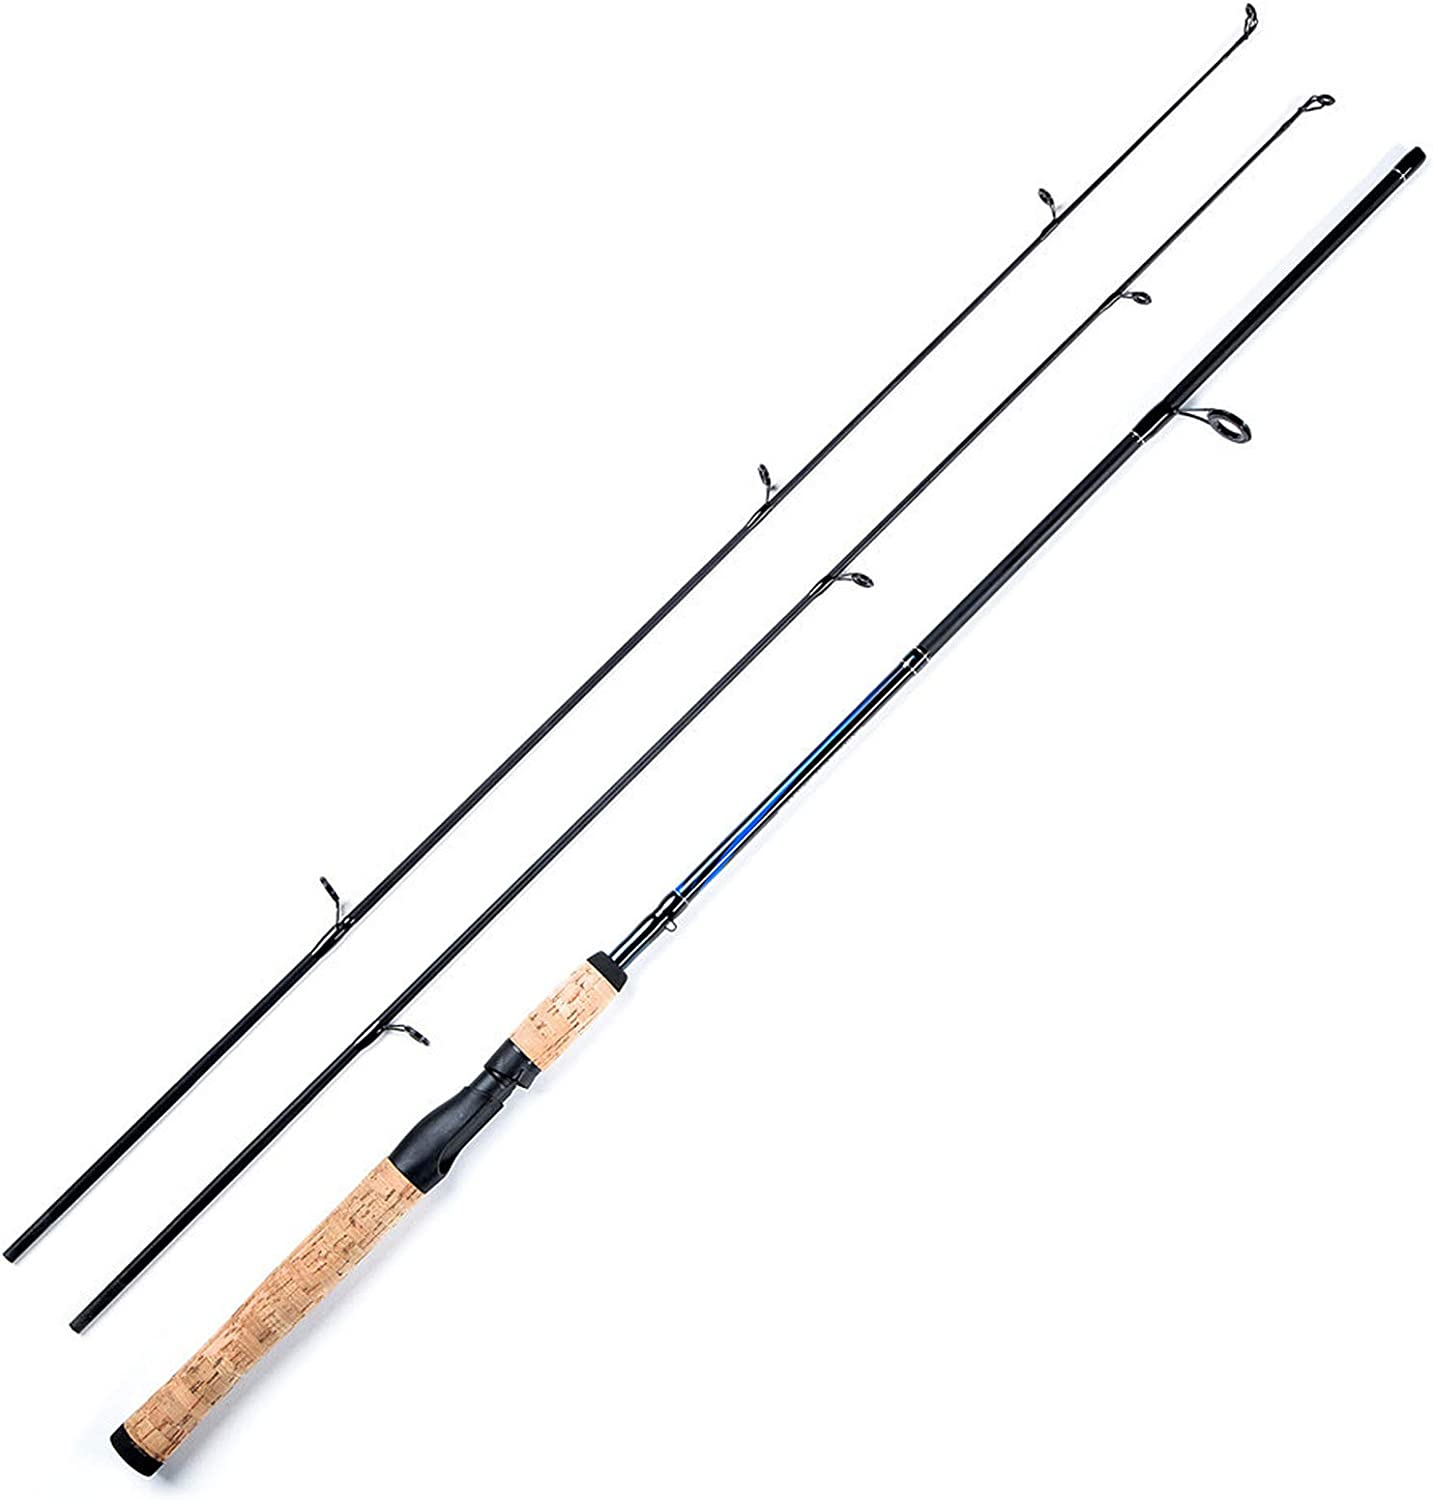 From Zero 1.8M Sale price Casting Spinning Fishi Fishing River Import Rod